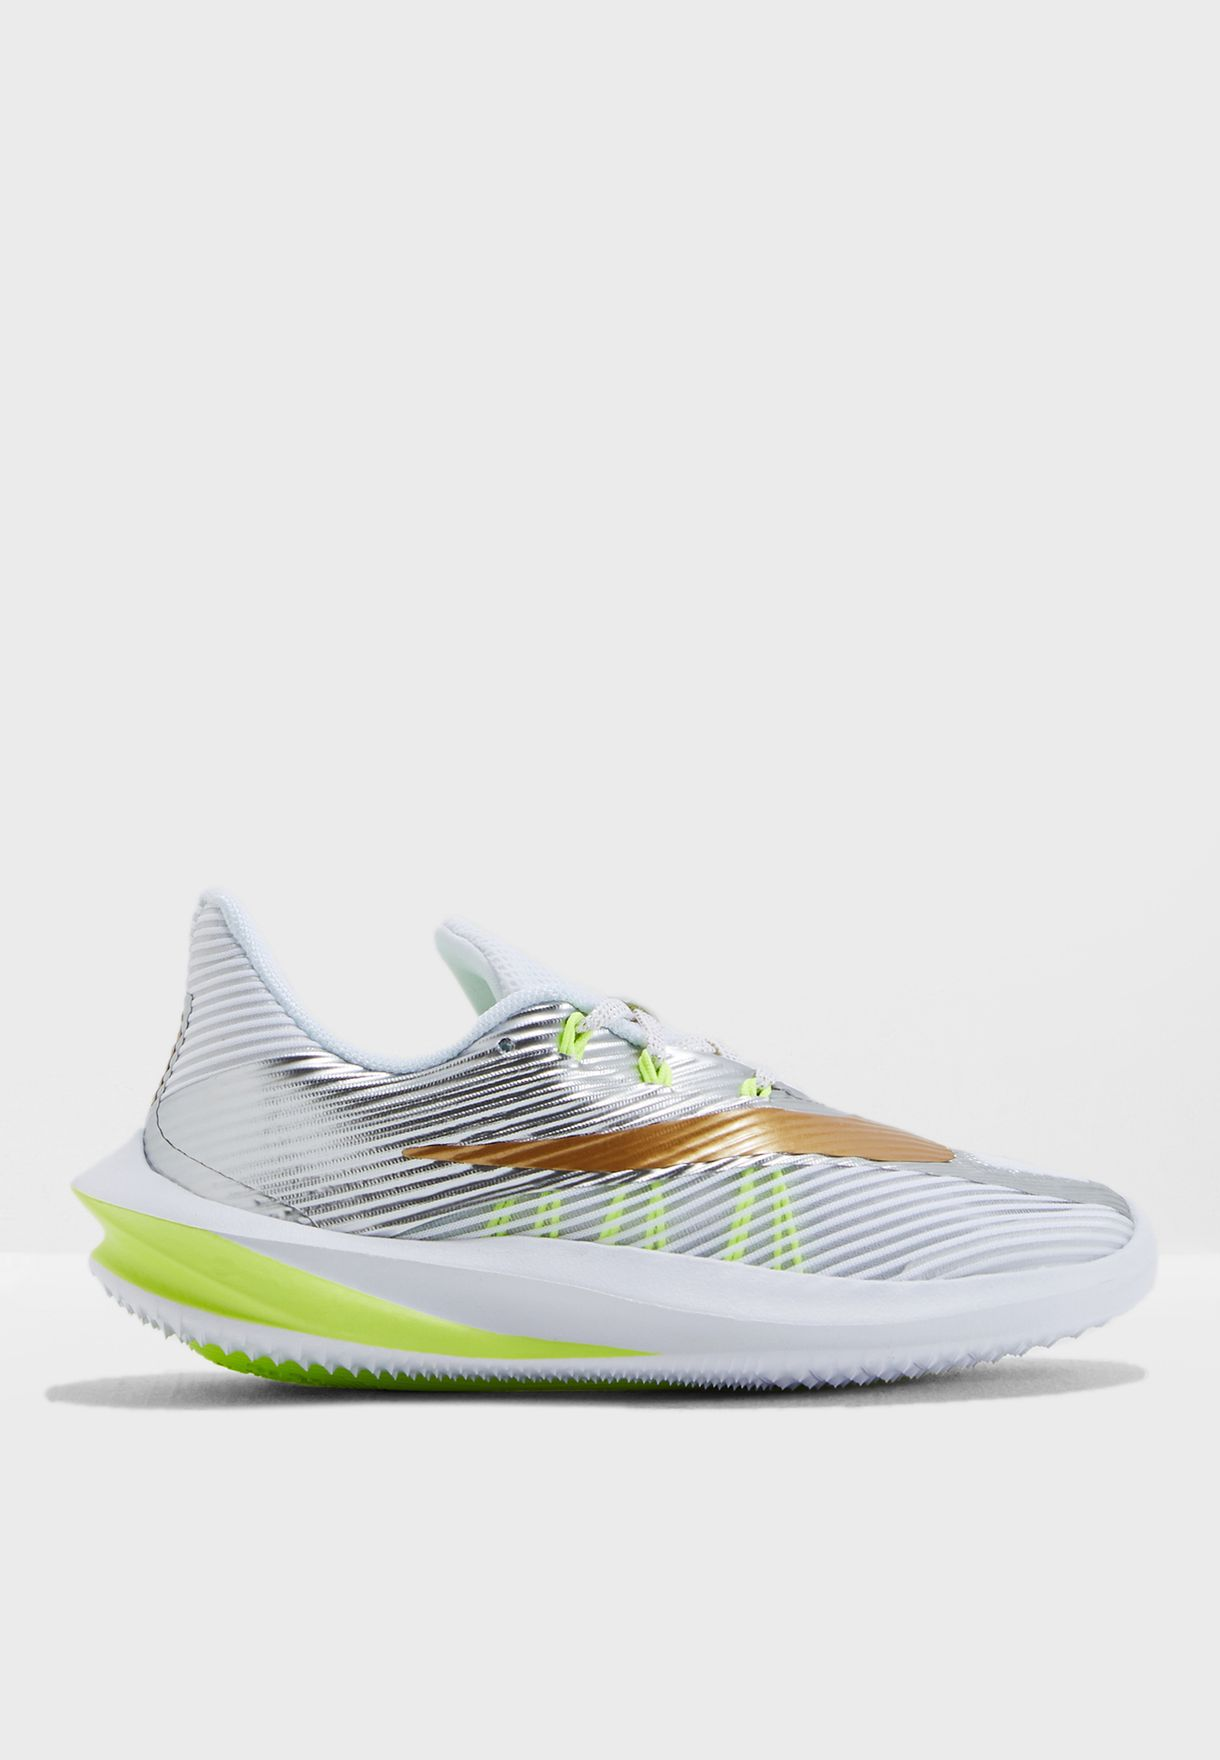 b558532ac7318 Shop Nike multicolor Youth Future Speed AH6747-100 for Kids in Saudi ...